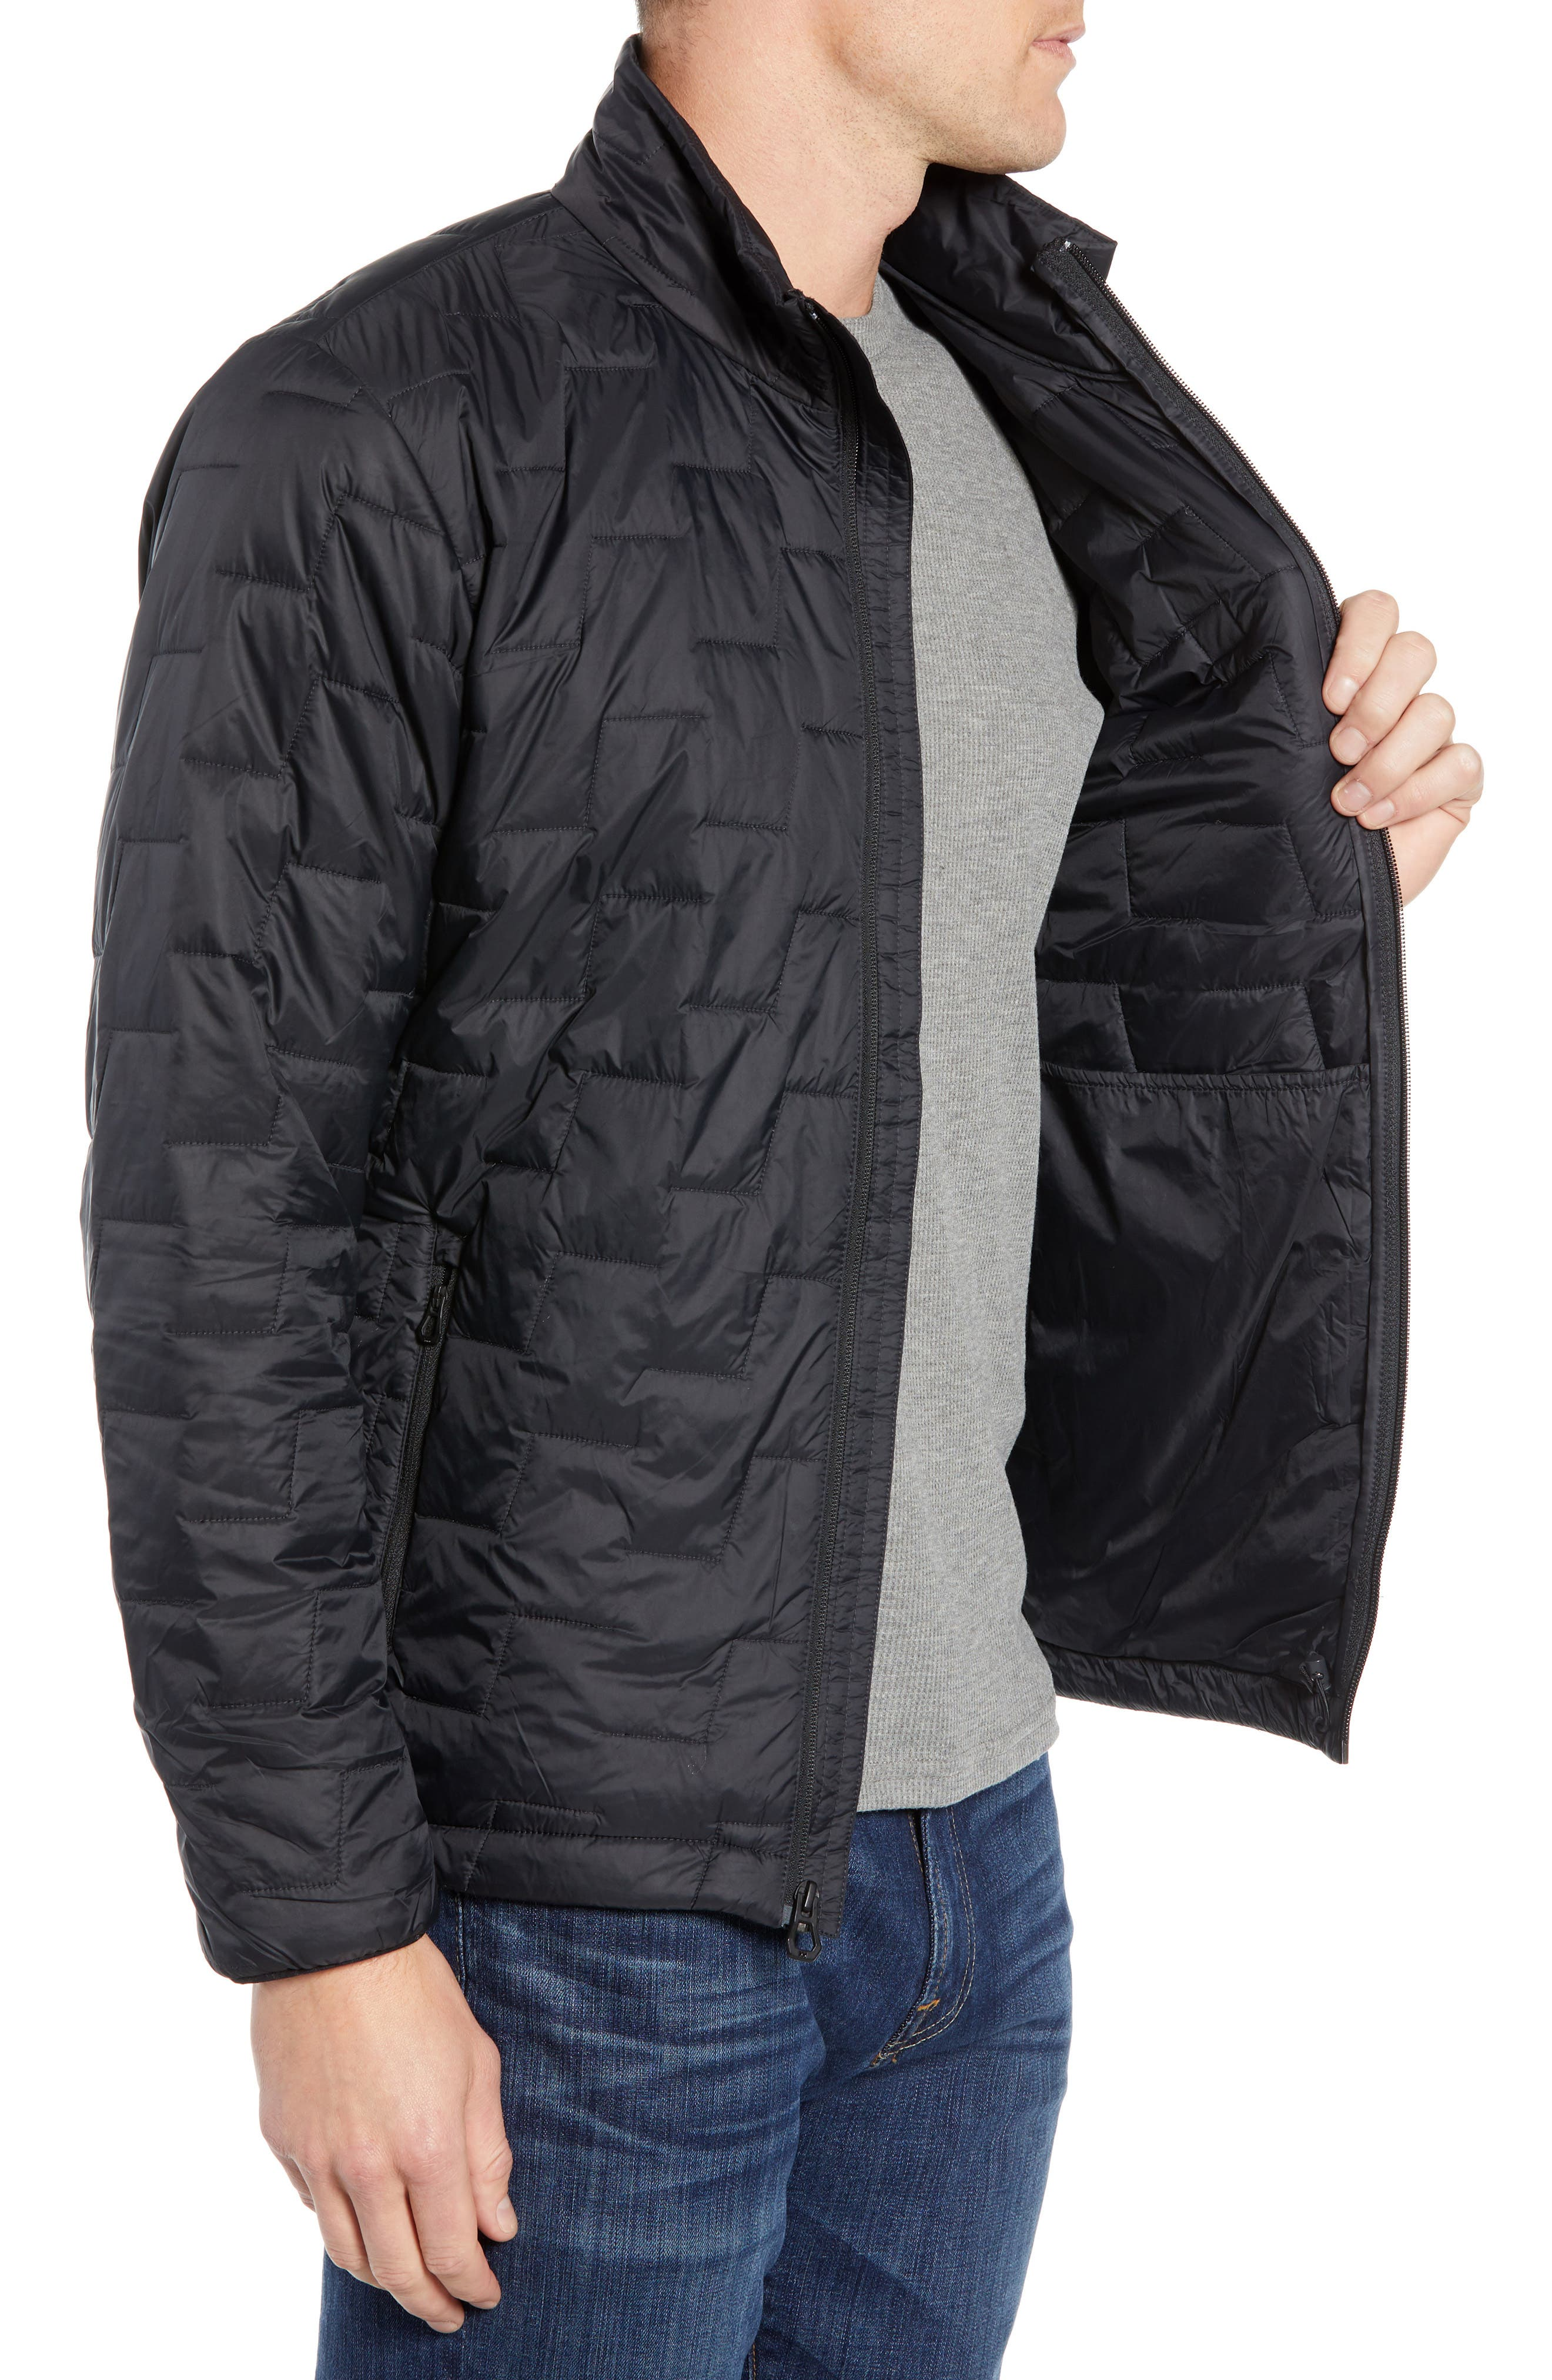 Lifaloft Insulator Jacket,                             Alternate thumbnail 3, color,                             BLACK MATTE